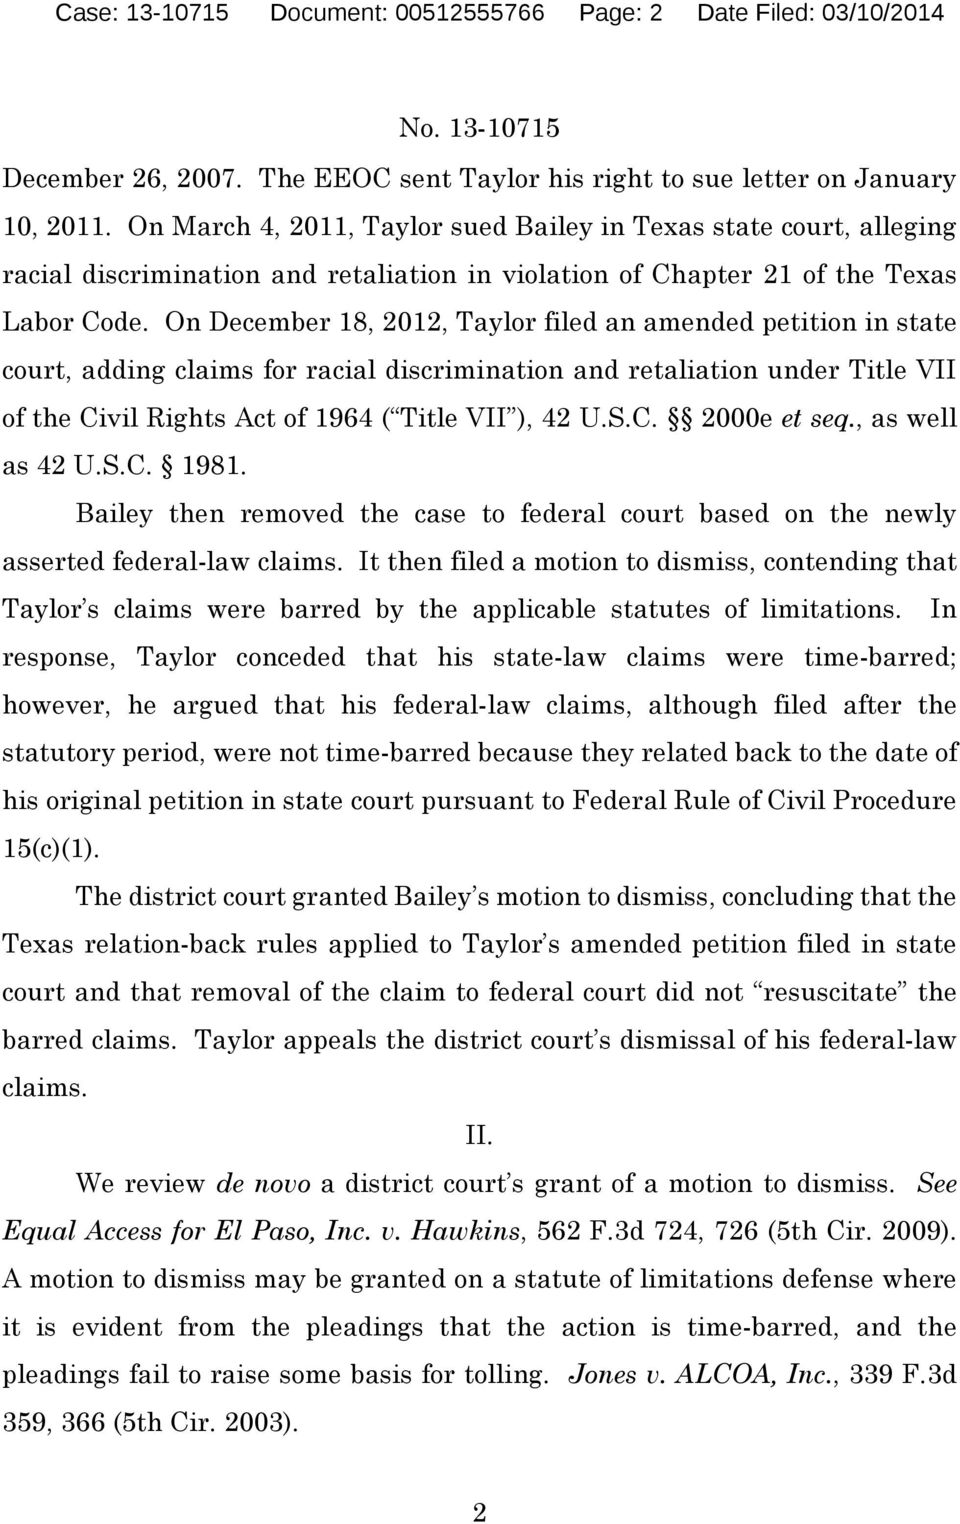 On December 18, 2012, Taylor filed an amended petition in state court, adding claims for racial discrimination and retaliation under Title VII of the Civil Rights Act of 1964 ( Title VII ), 42 U.S.C. 2000e et seq.